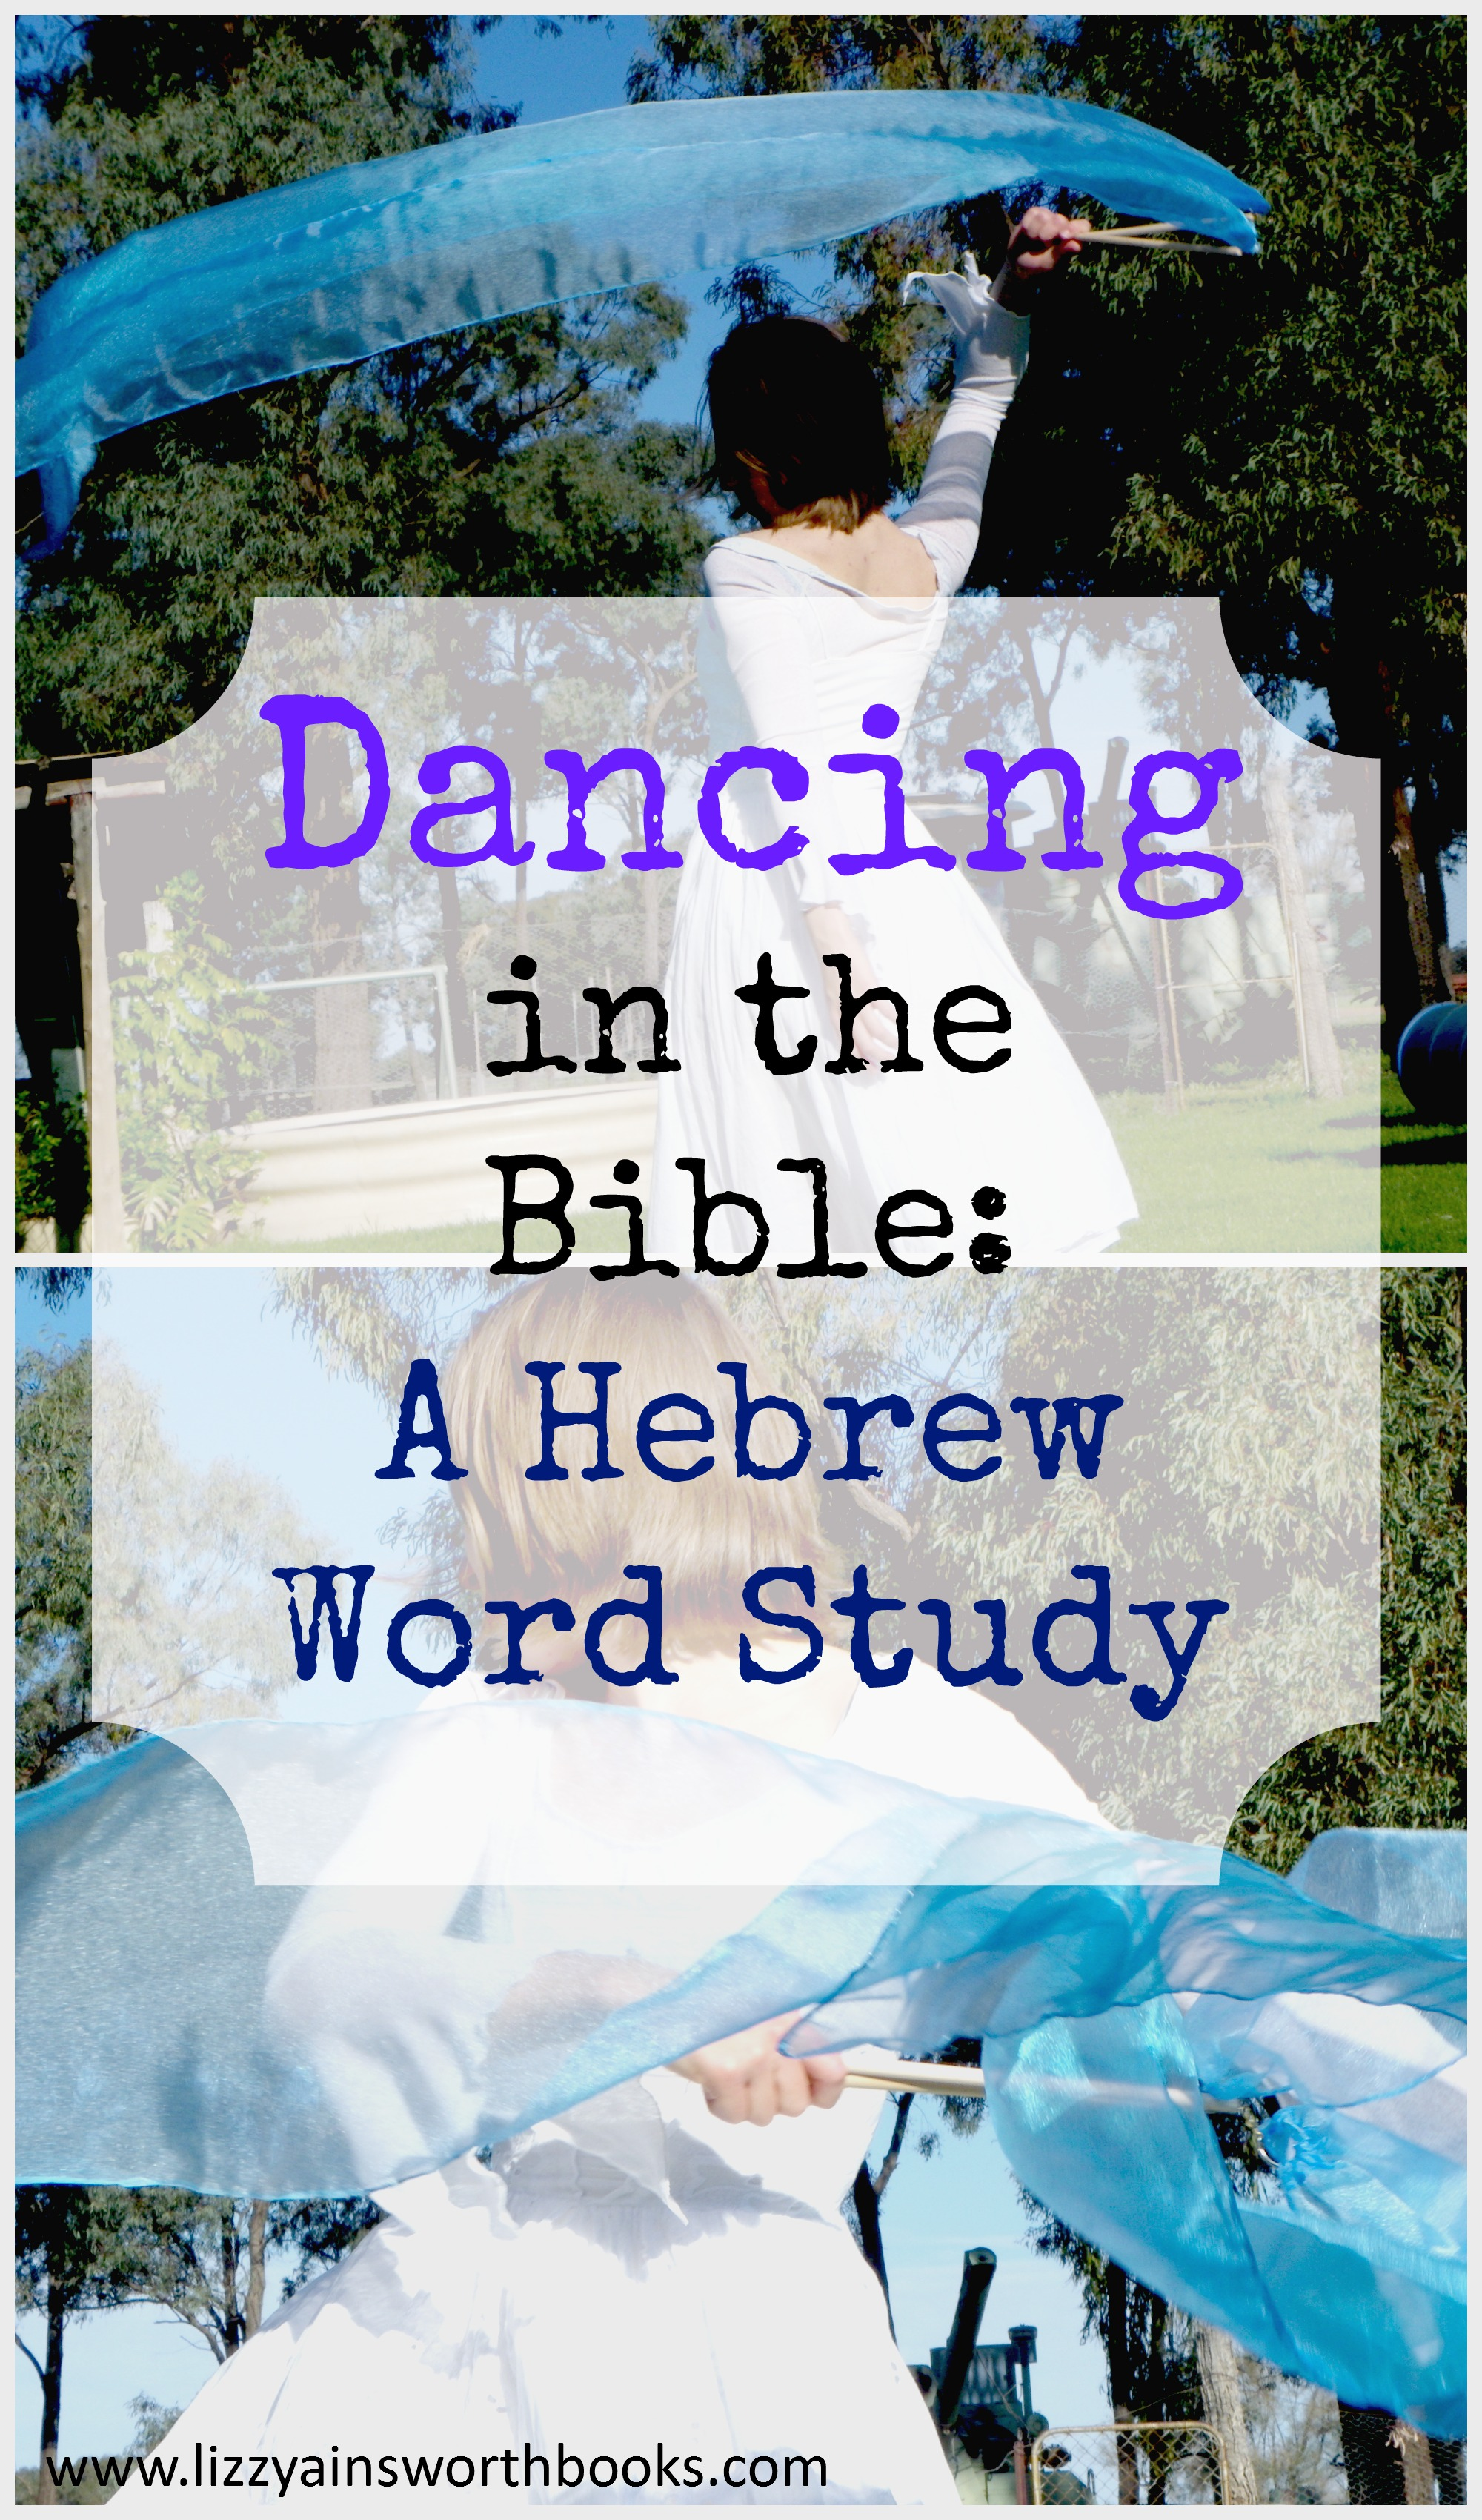 Dancing in the Bible - A Hebrew Word Study - Where Deep Calls to Deep